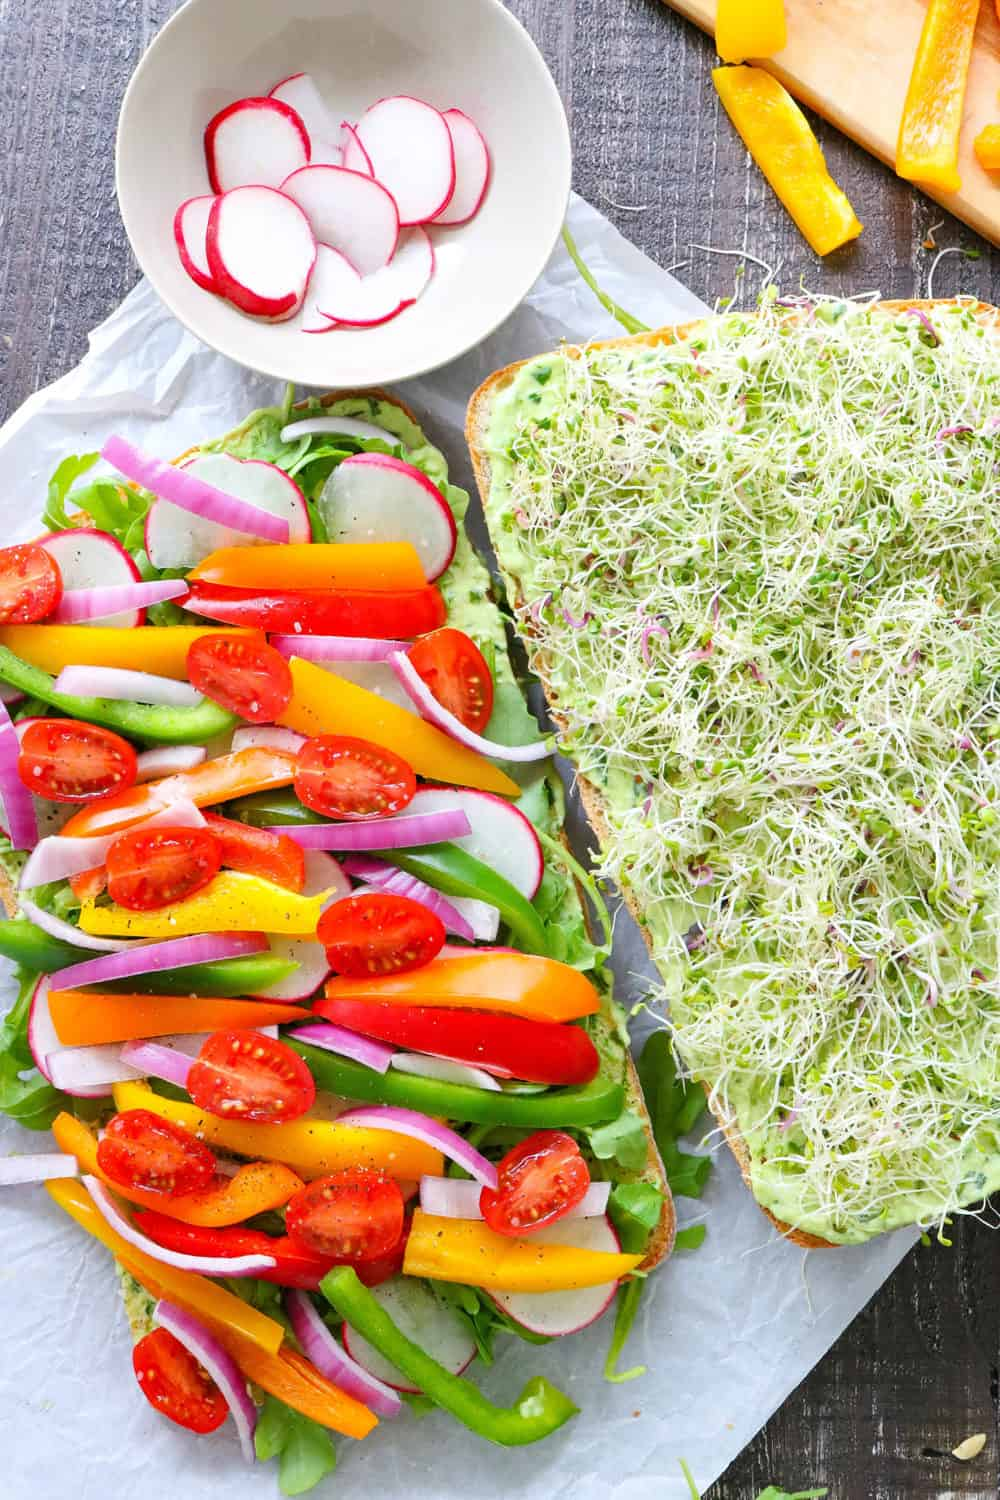 two pieces of bread with on layered with sliced peppers and onions and the other with reamy green dressing and sprouts